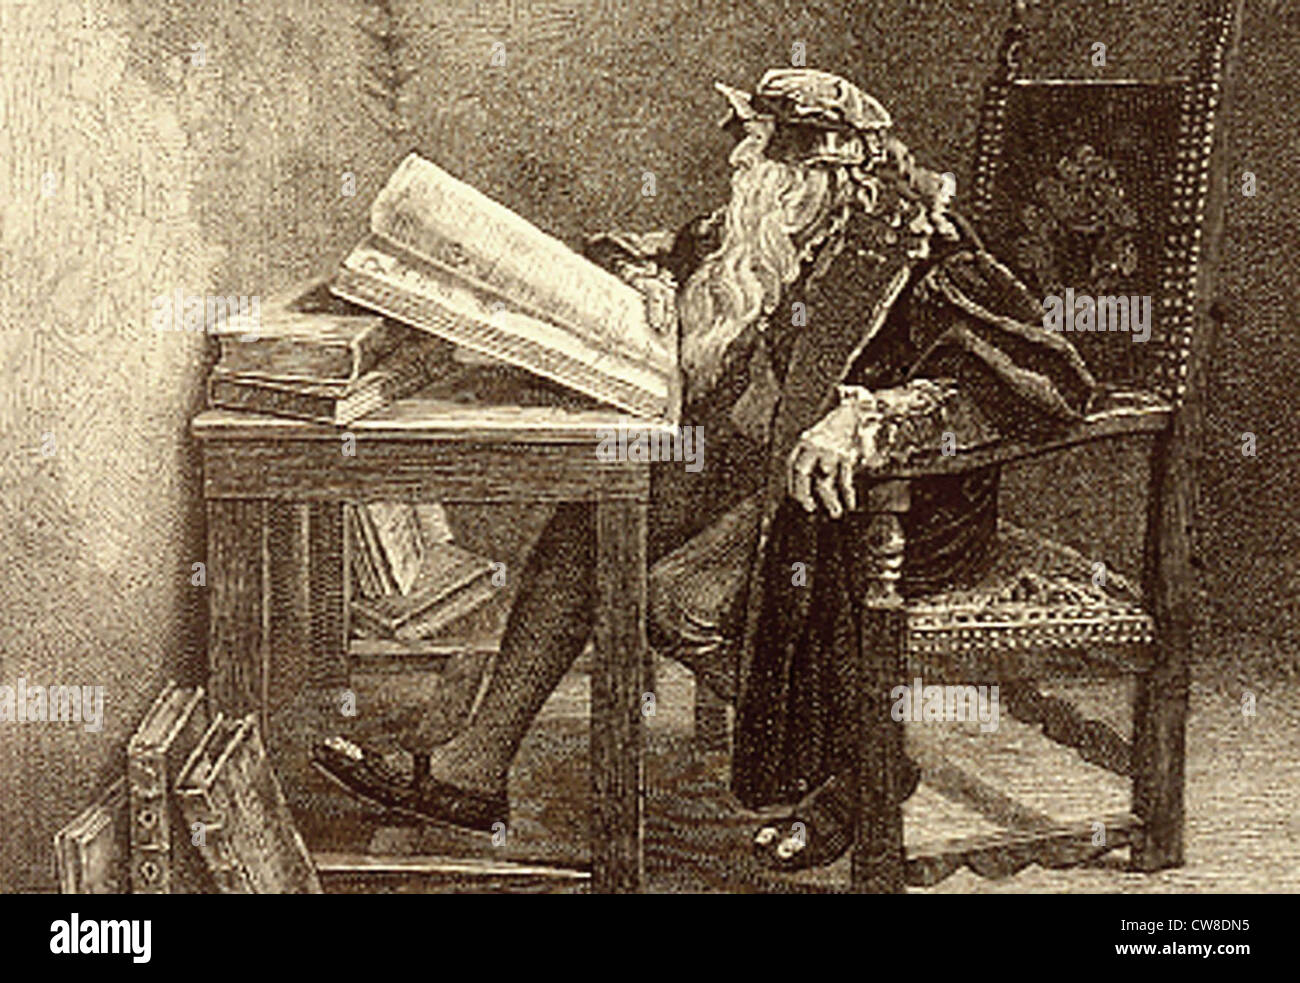 Dr Faust, a dramatic comedy by Goethe. Stock Photo